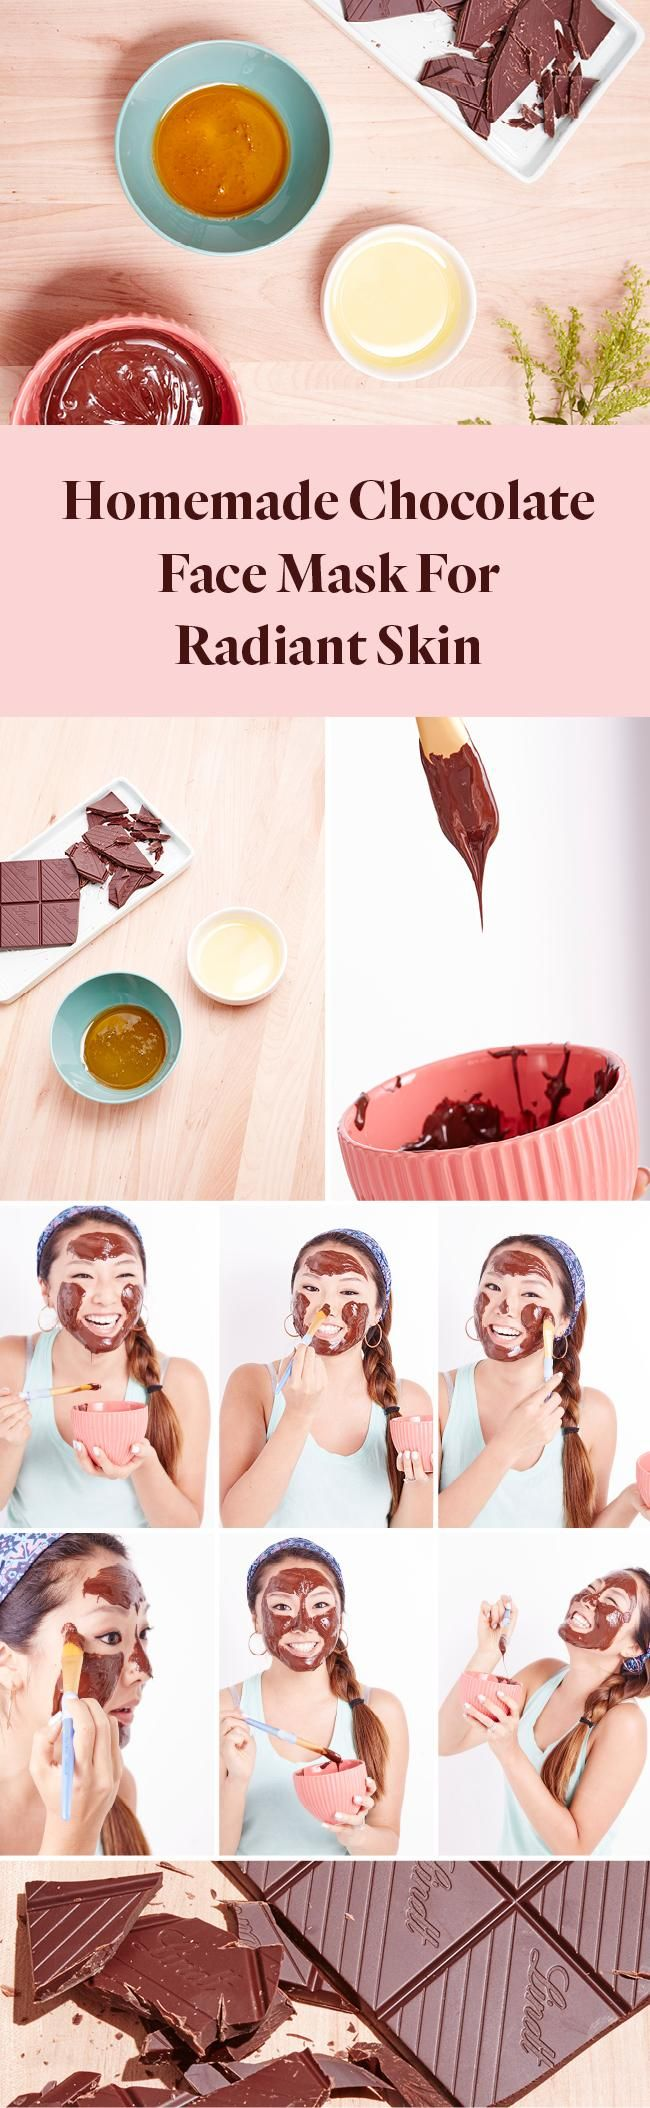 If you love chocolate as much as we do, you'll be happy to hear that there's a way to indulge yourself without the extra calories with our DIY chocolate facial mask! Plus, today is National Chocolate Day, so why not?